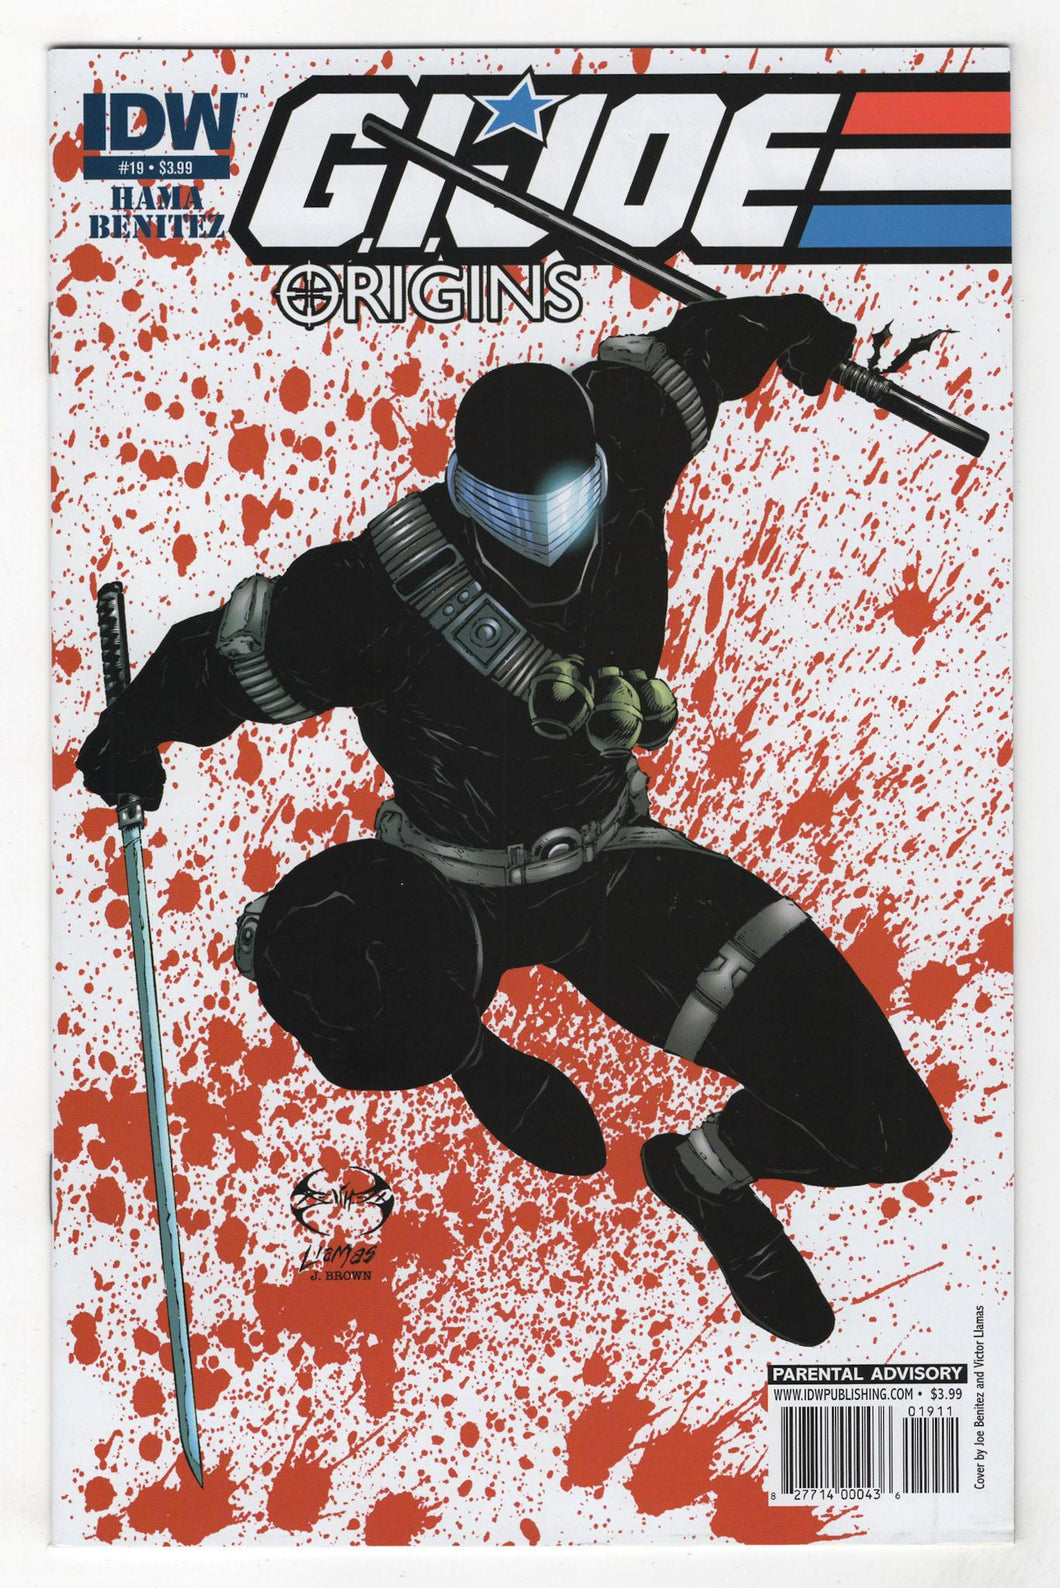 GI Joe Origins #19 Cover Front